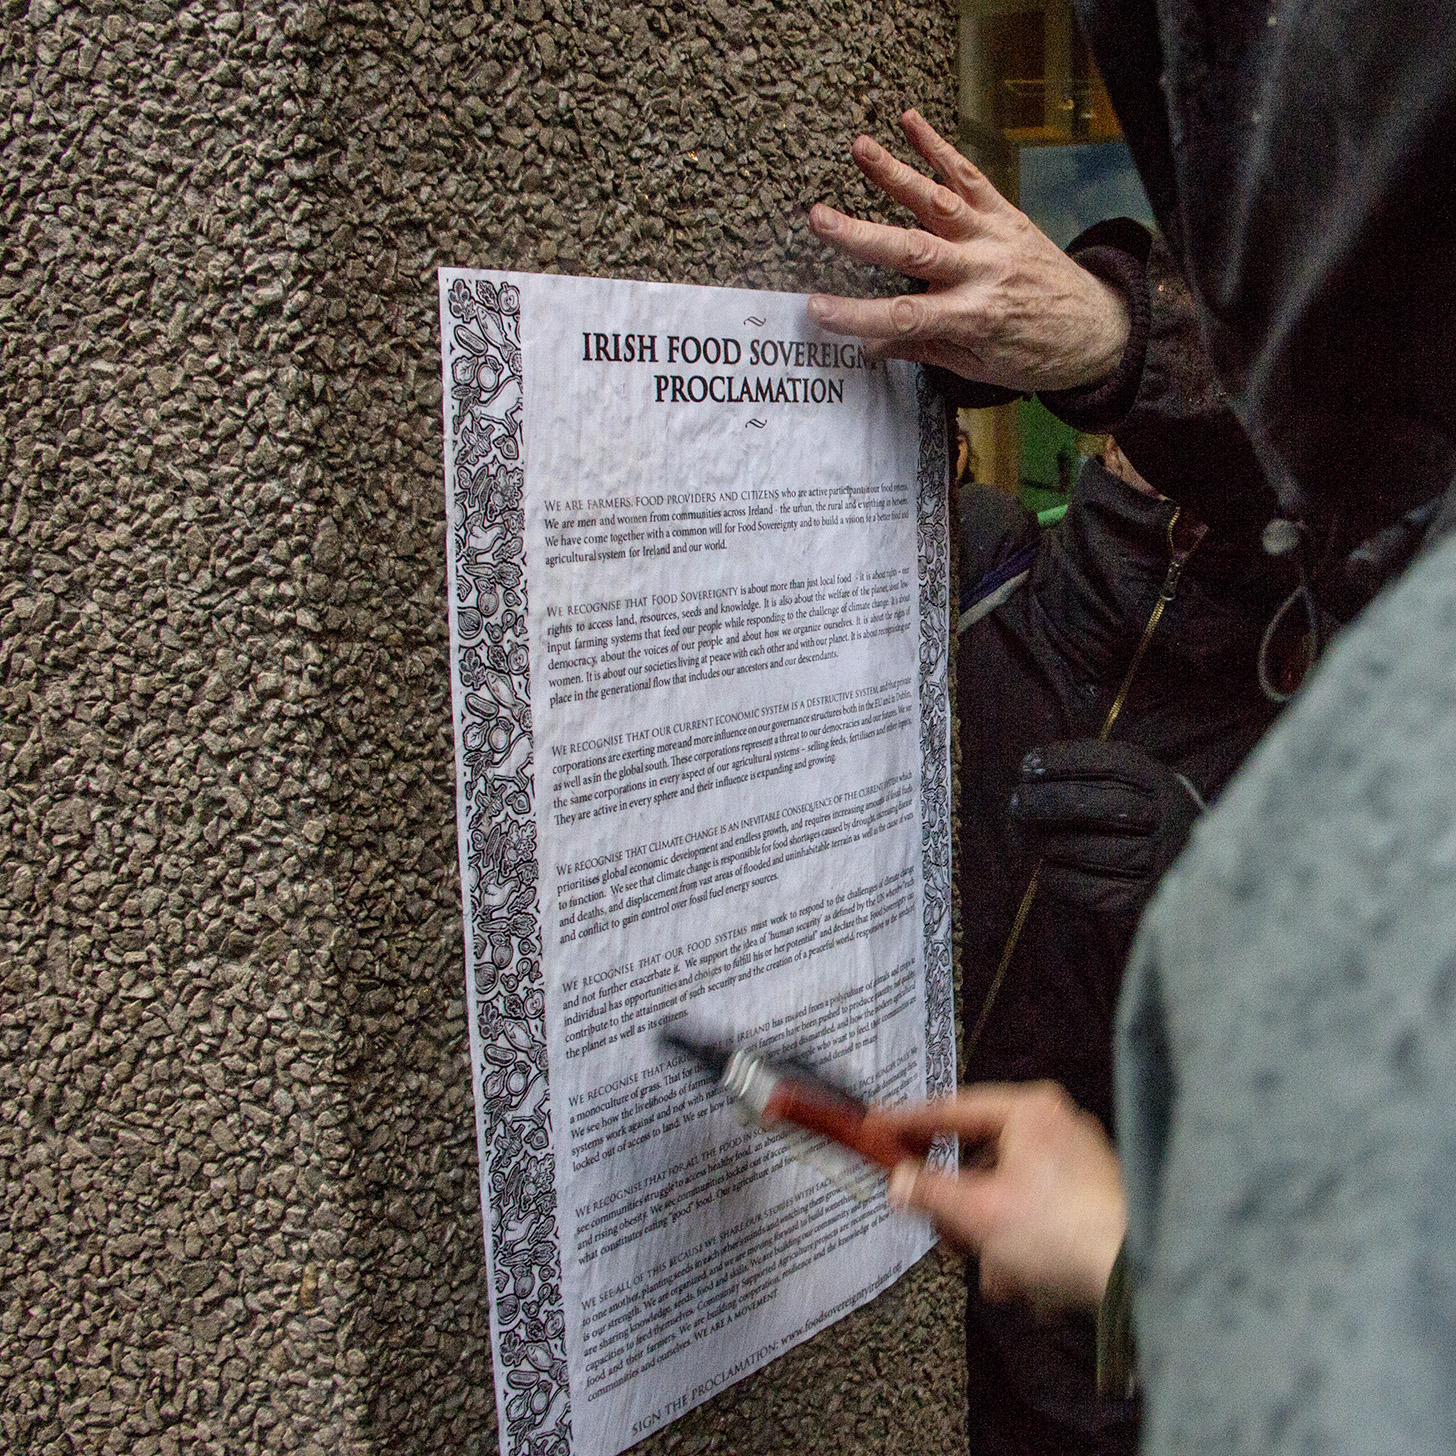 The Food Sovereignty Proclamation is pasted to the Department of Agriculture during the Climate March. Photo: William Hederman